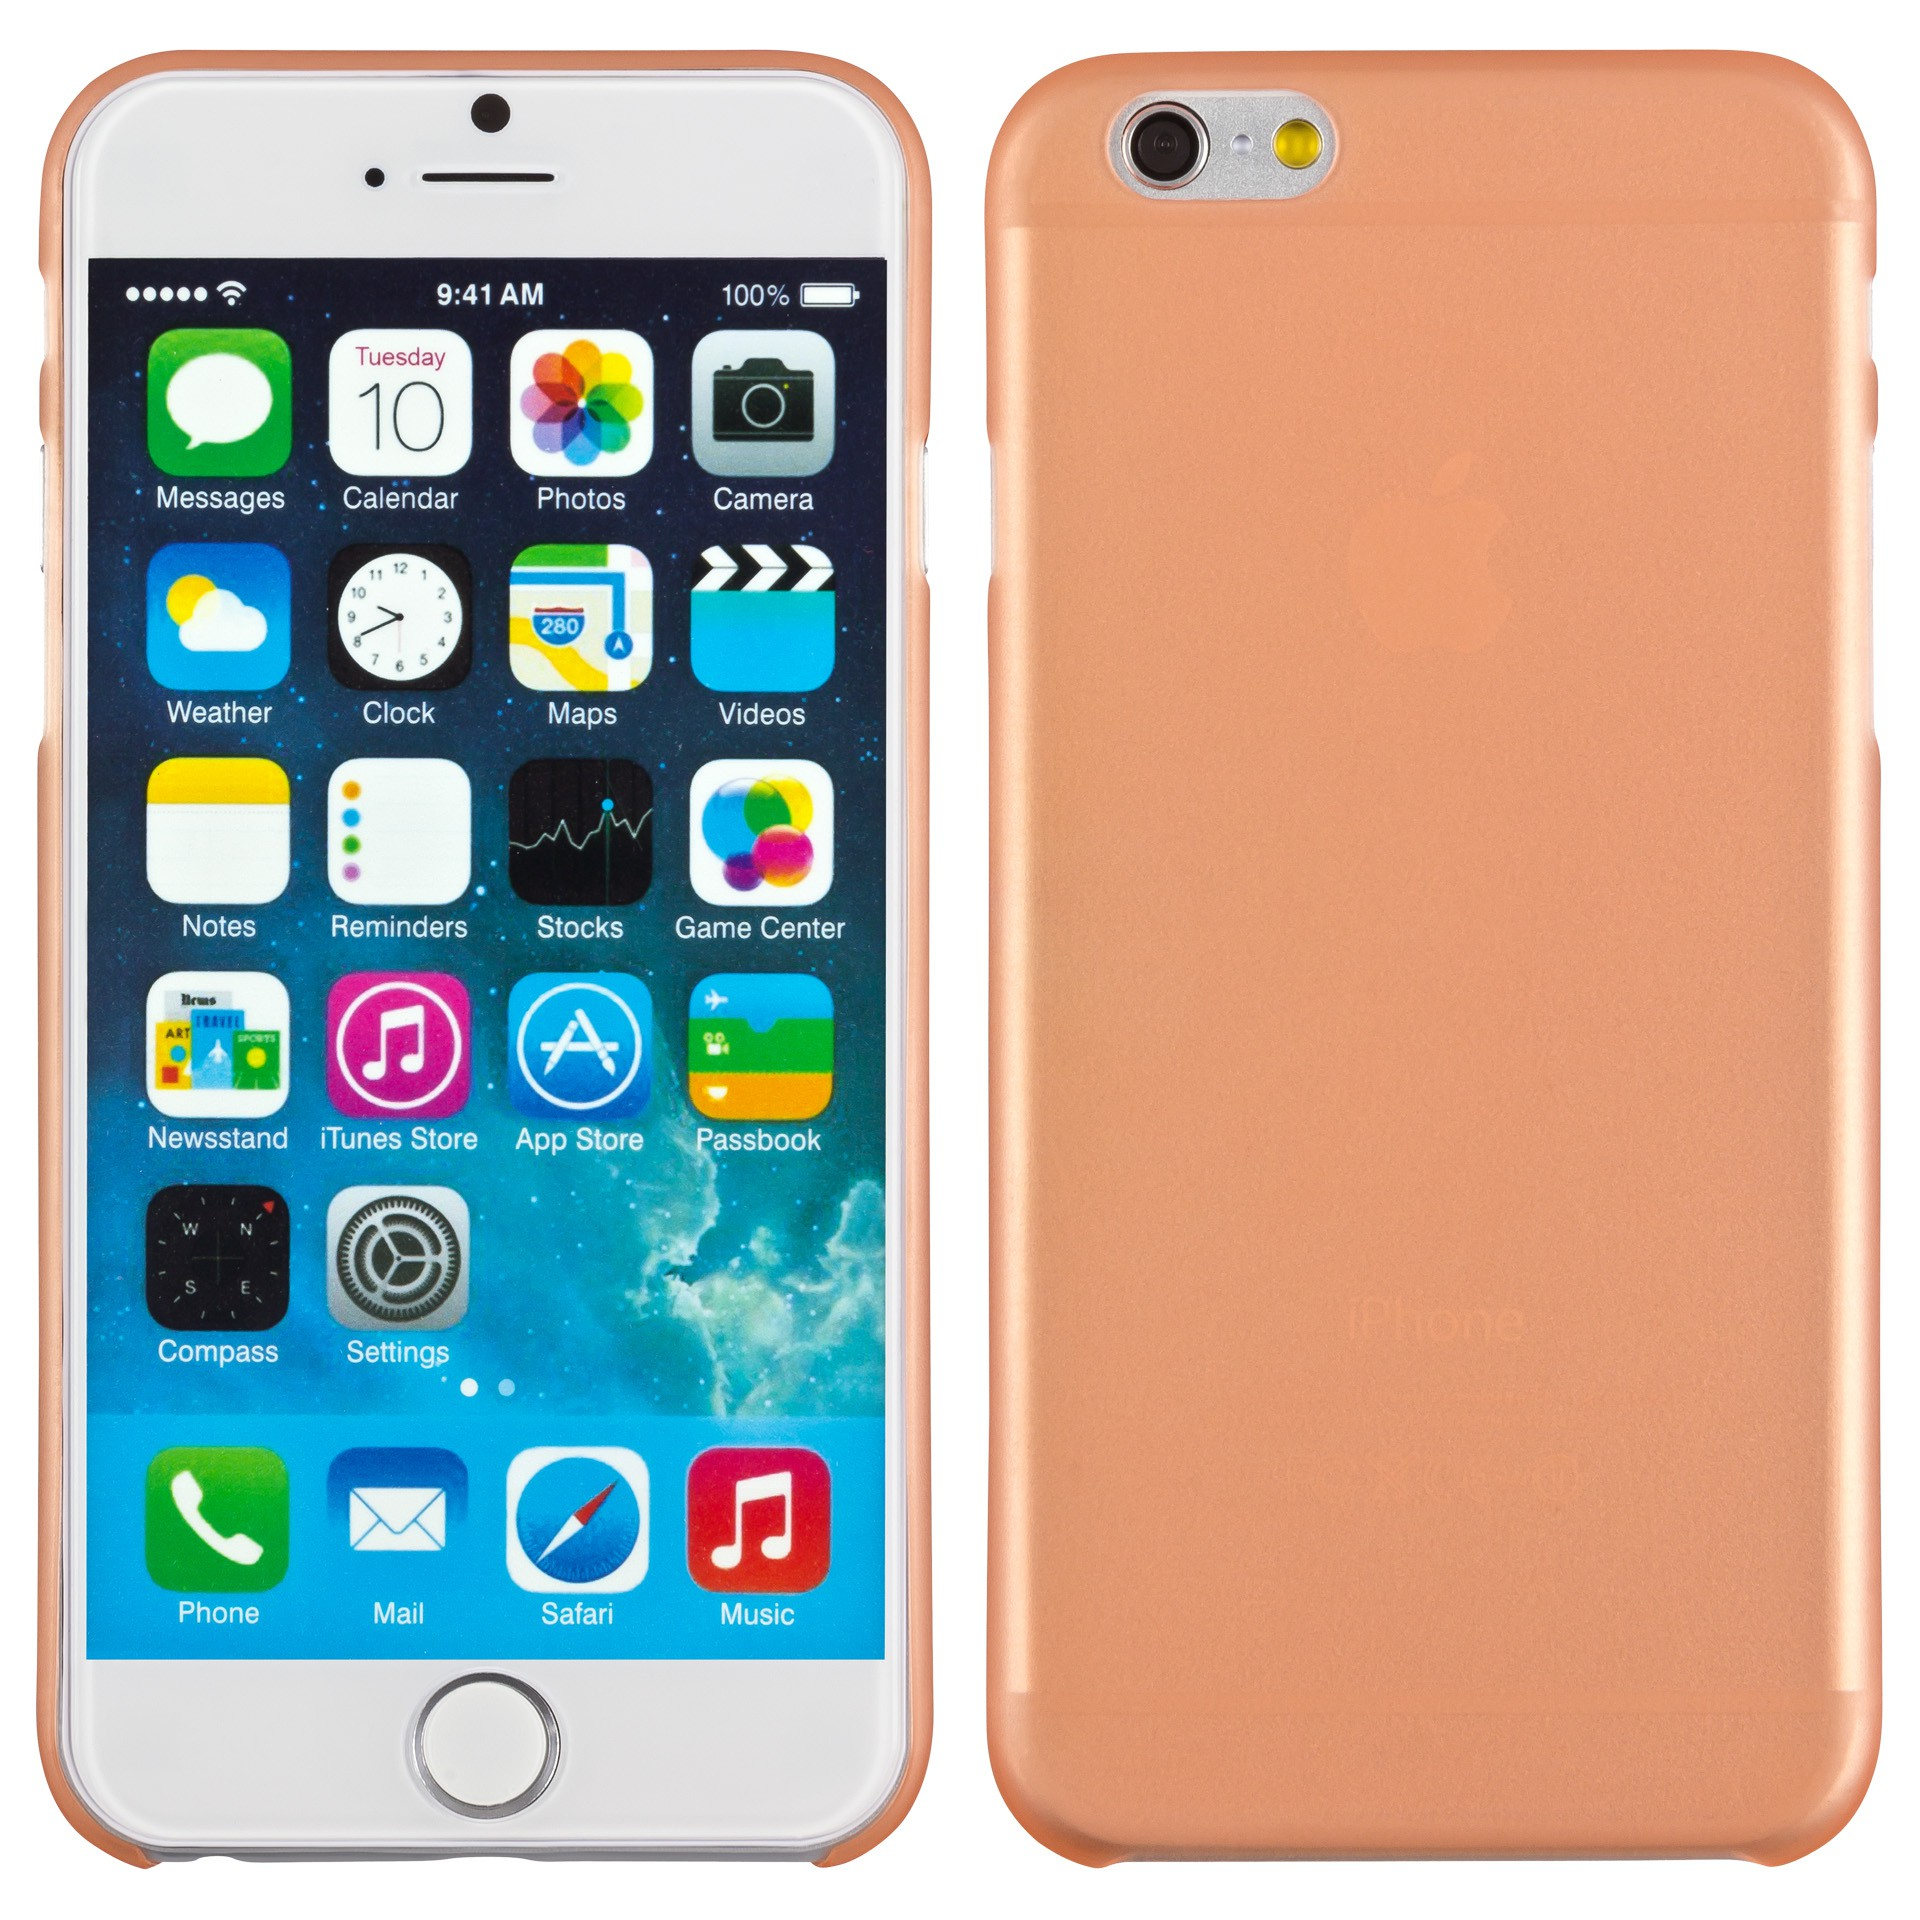 Yemota Pro Slimcase iPhone 6 - Orange